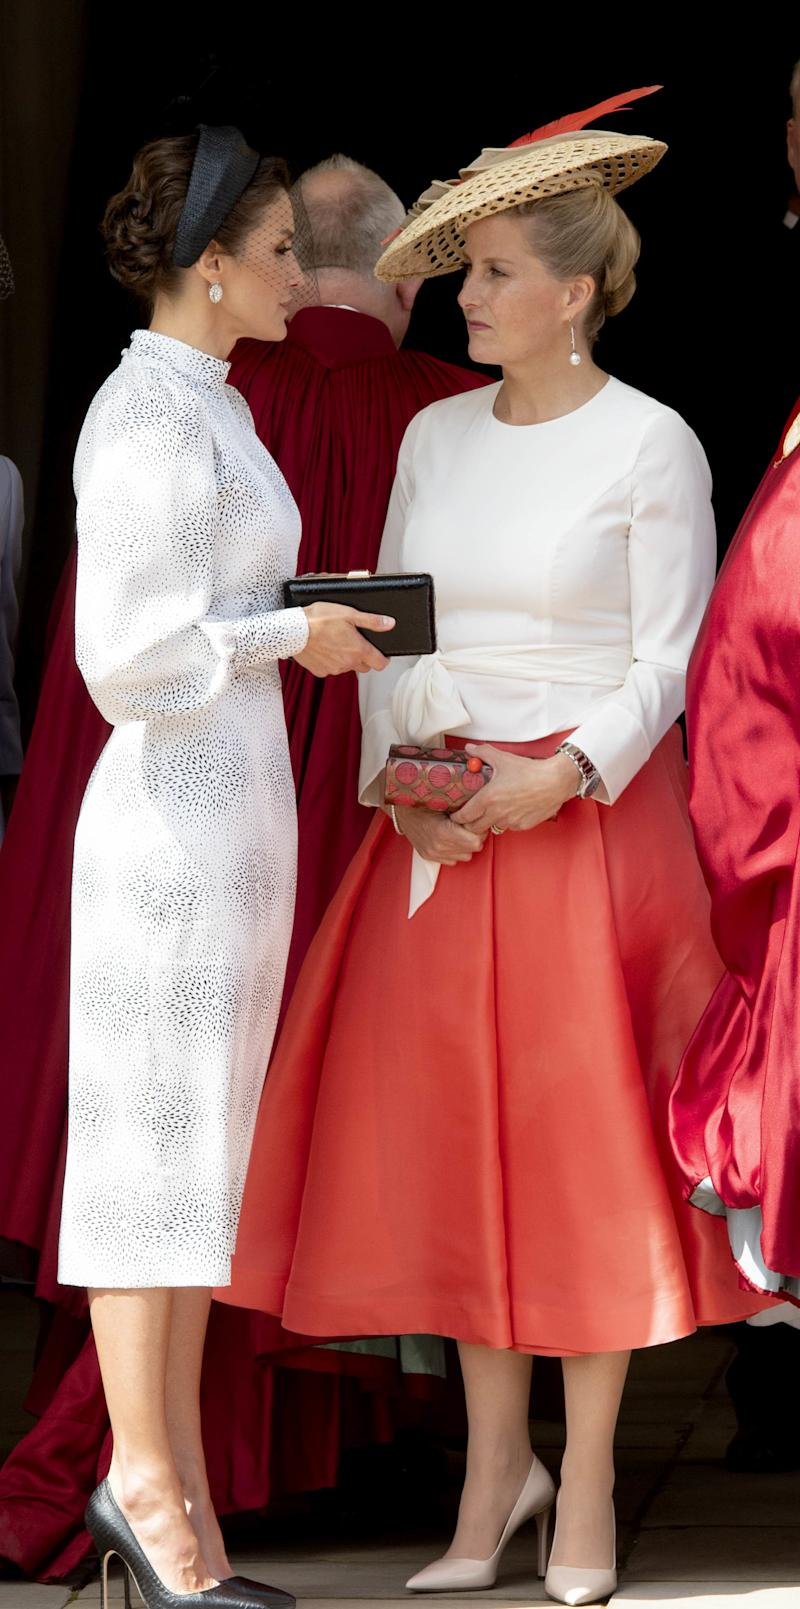 Britain's Sophie, Countess of Wessex (L), Spain's Queen Letizia attends the Most Noble Order of the Garter ( Orde van de Kouseband) ceremony at St George�s Chapel at Windsor Castle in Windsor, England on June 17, 2019. (Photo by PPE/Nieboer/Sipa USA)